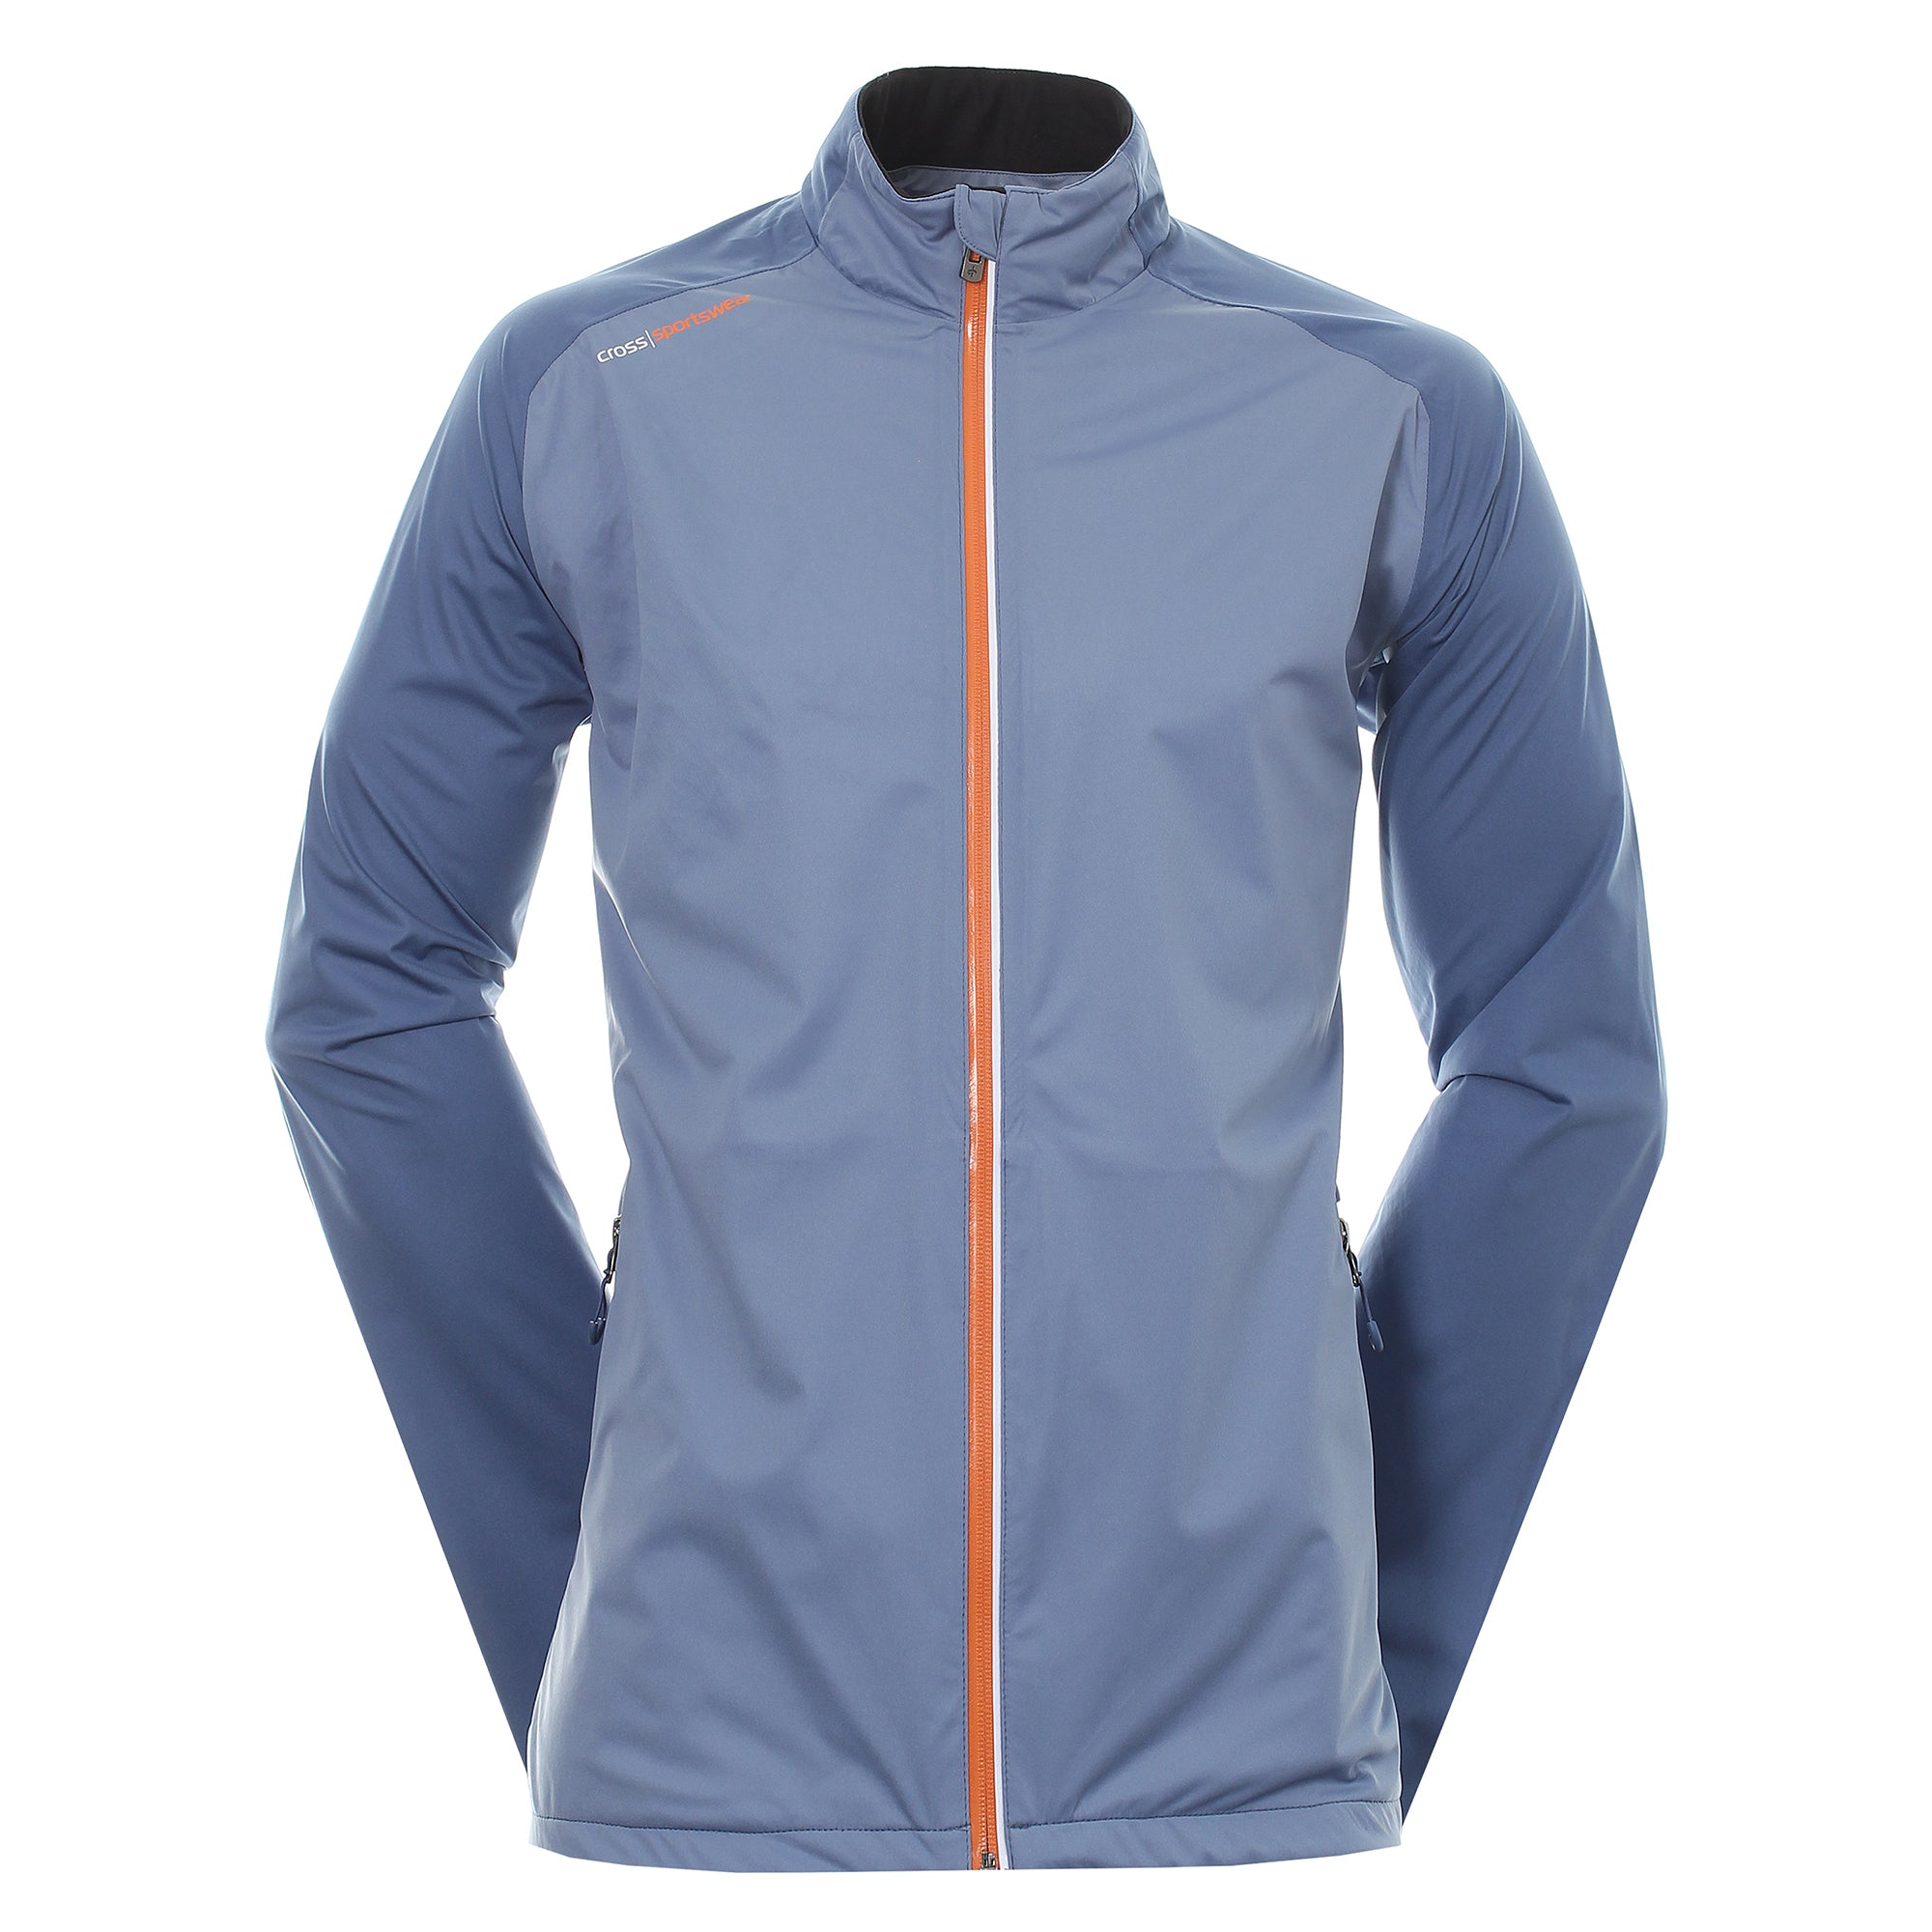 Cross Hurricane Waterproof Golf Jacket